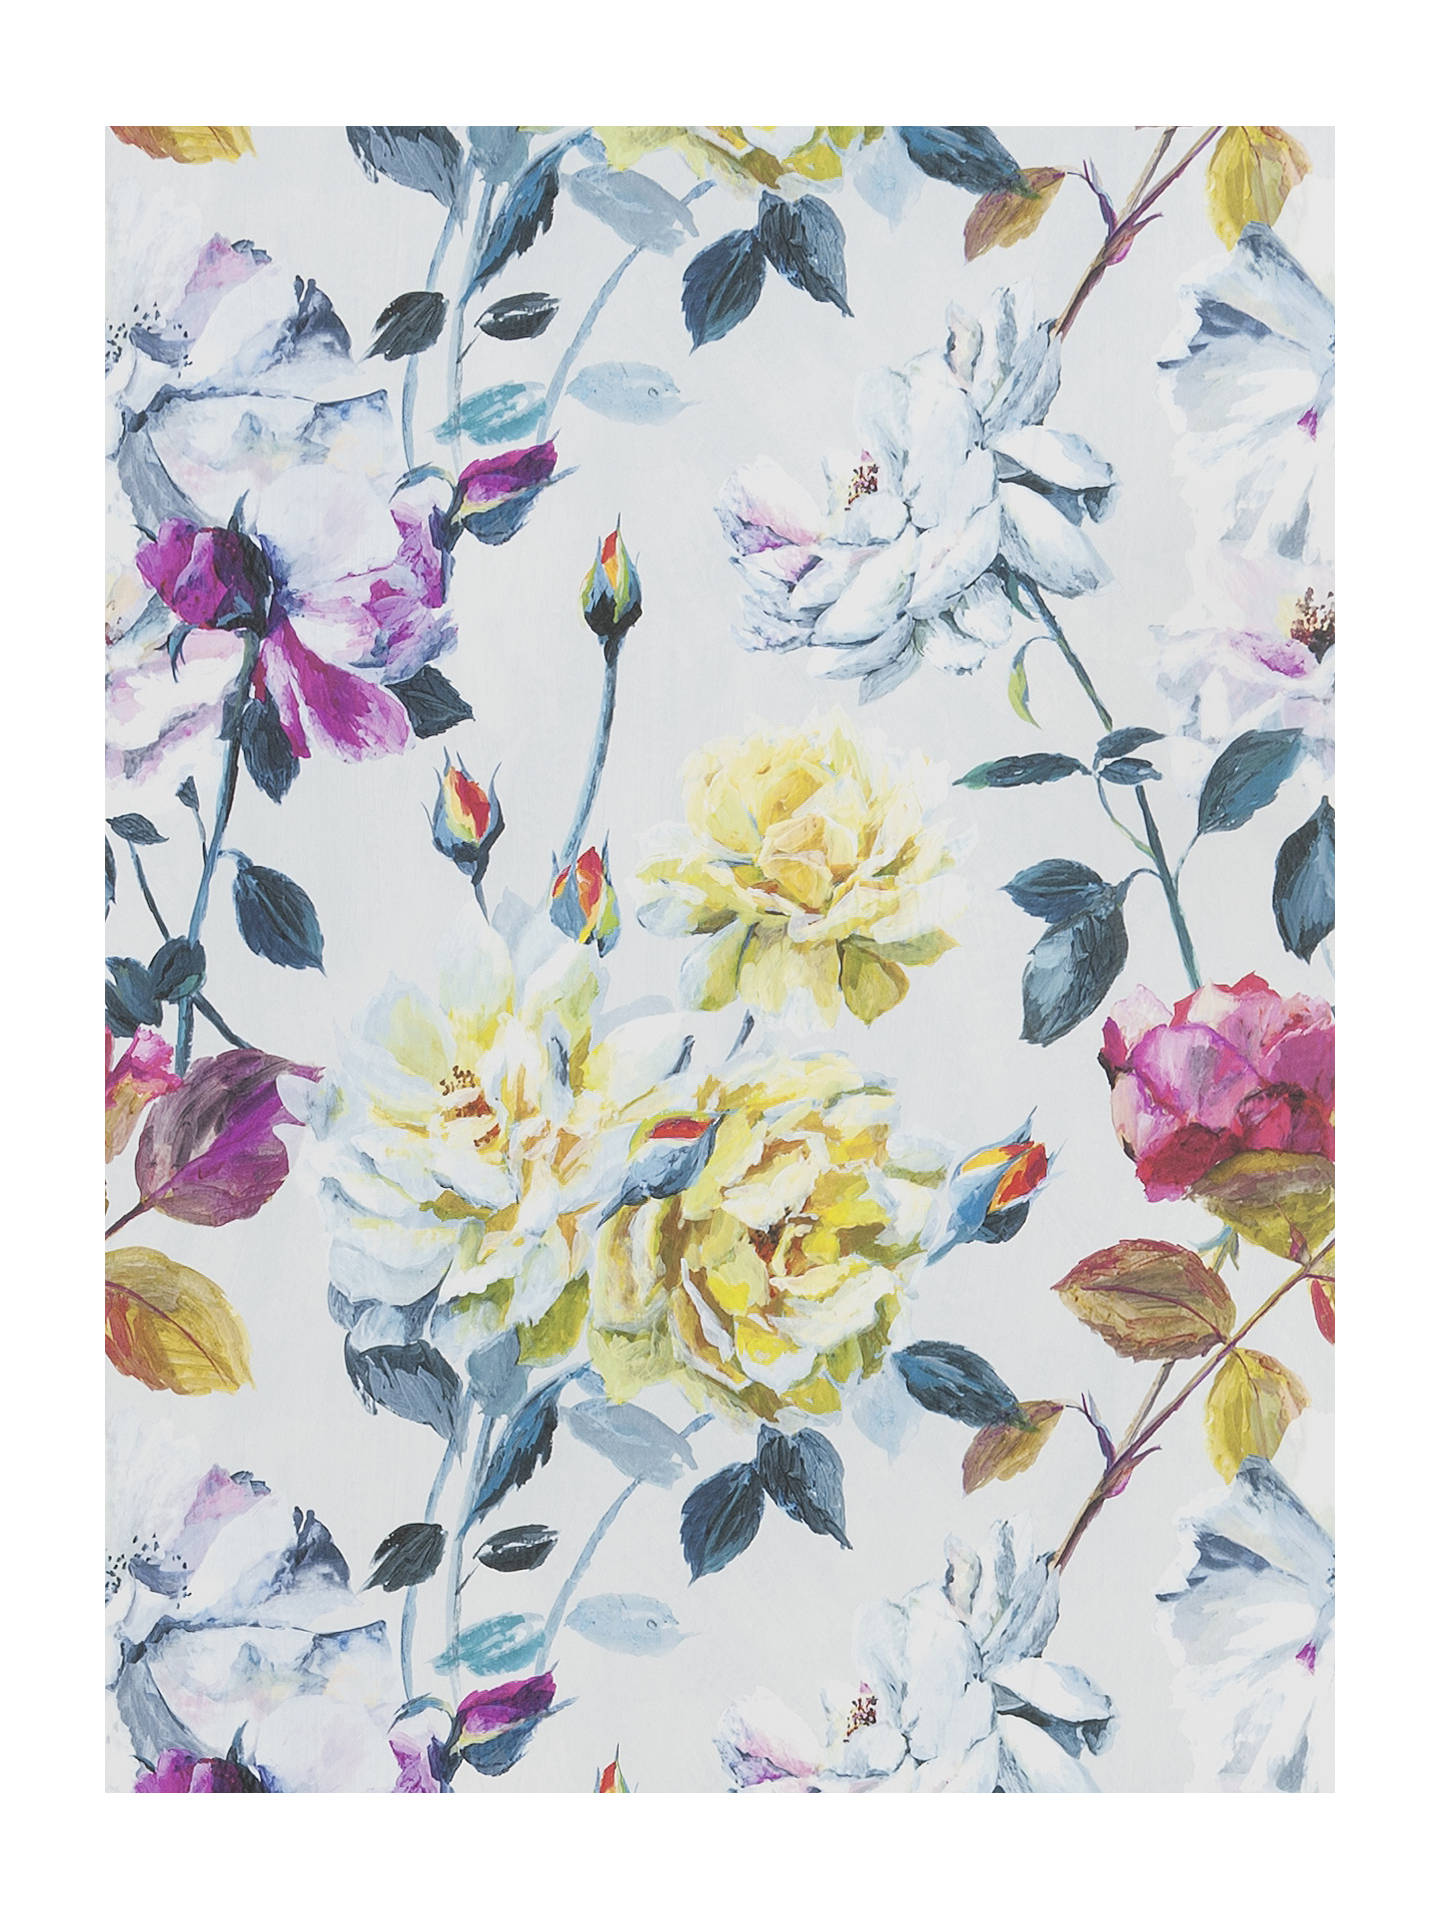 BuyDesigners Guild Jardin Des Plantes Couture Rose Paste The Wall Wallpaper Fuchsia PDG711 01